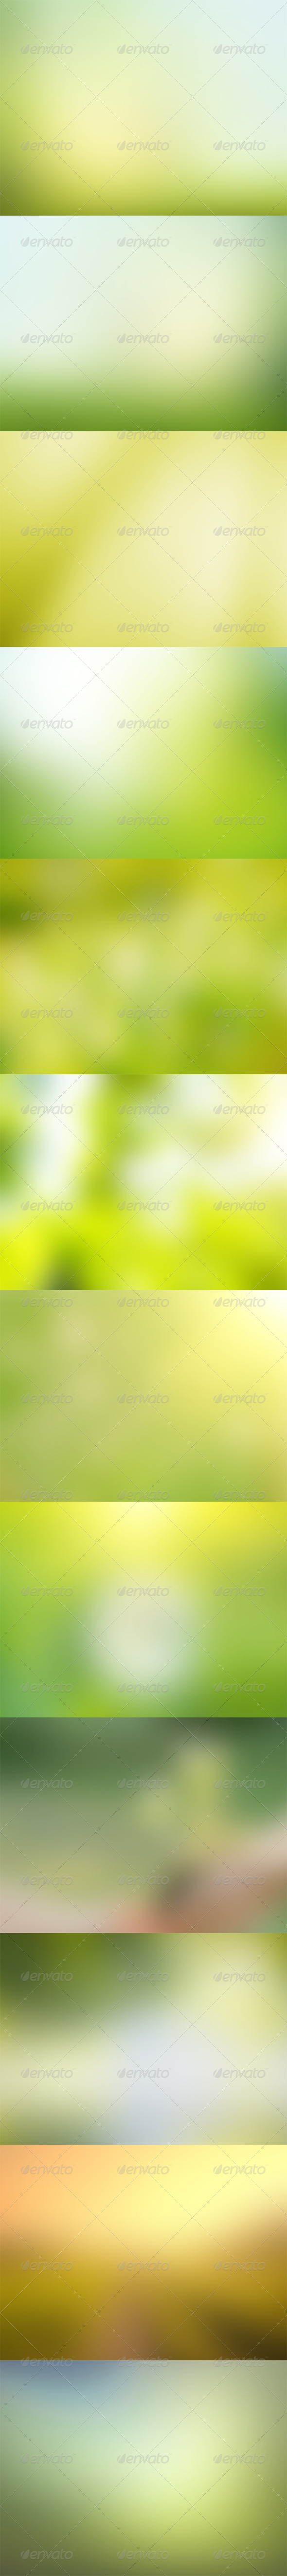 GraphicRiver Green Backgrounds 5703823